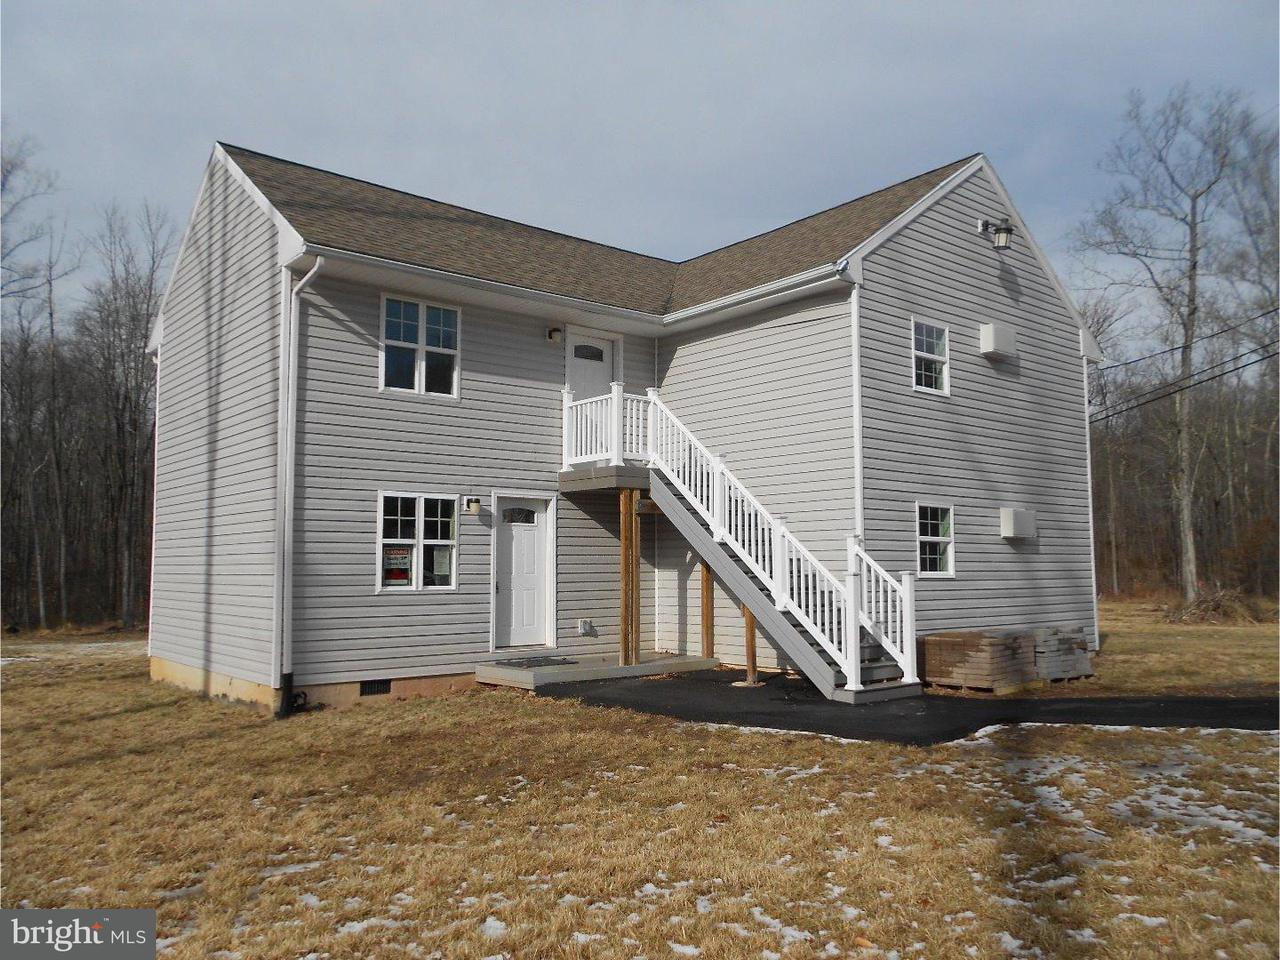 Single Family Home for Rent at 2408 HILL RD #UNIT 1 Sellersville, Pennsylvania 18960 United States